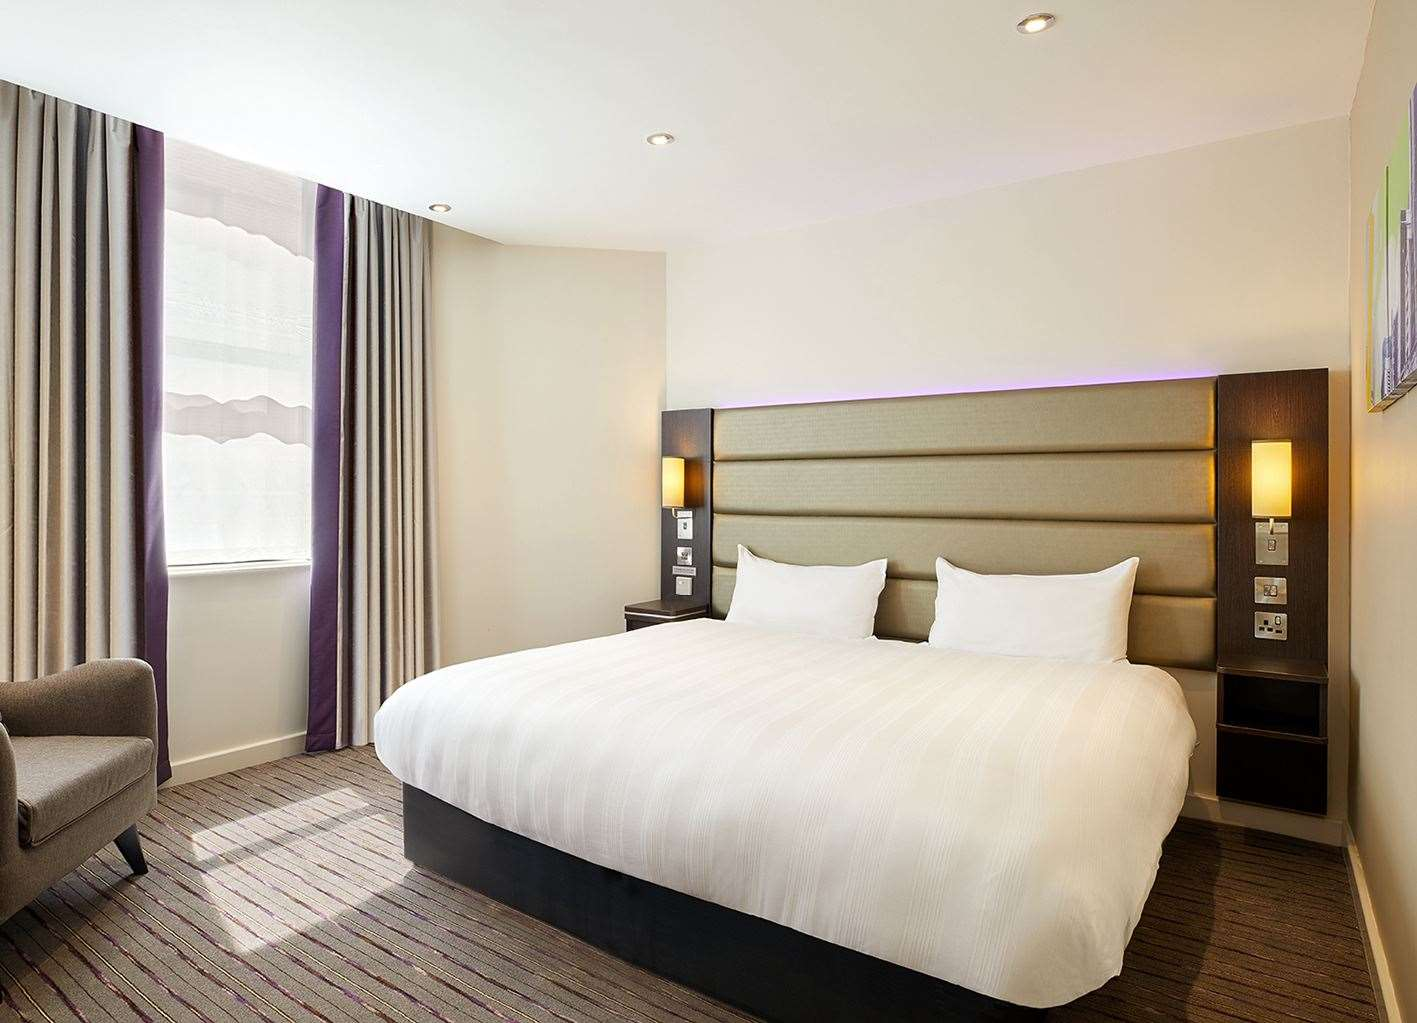 Premier Inn has says it has released millions of £29 hotel rooms. The company is hoping to reopen businesses in May